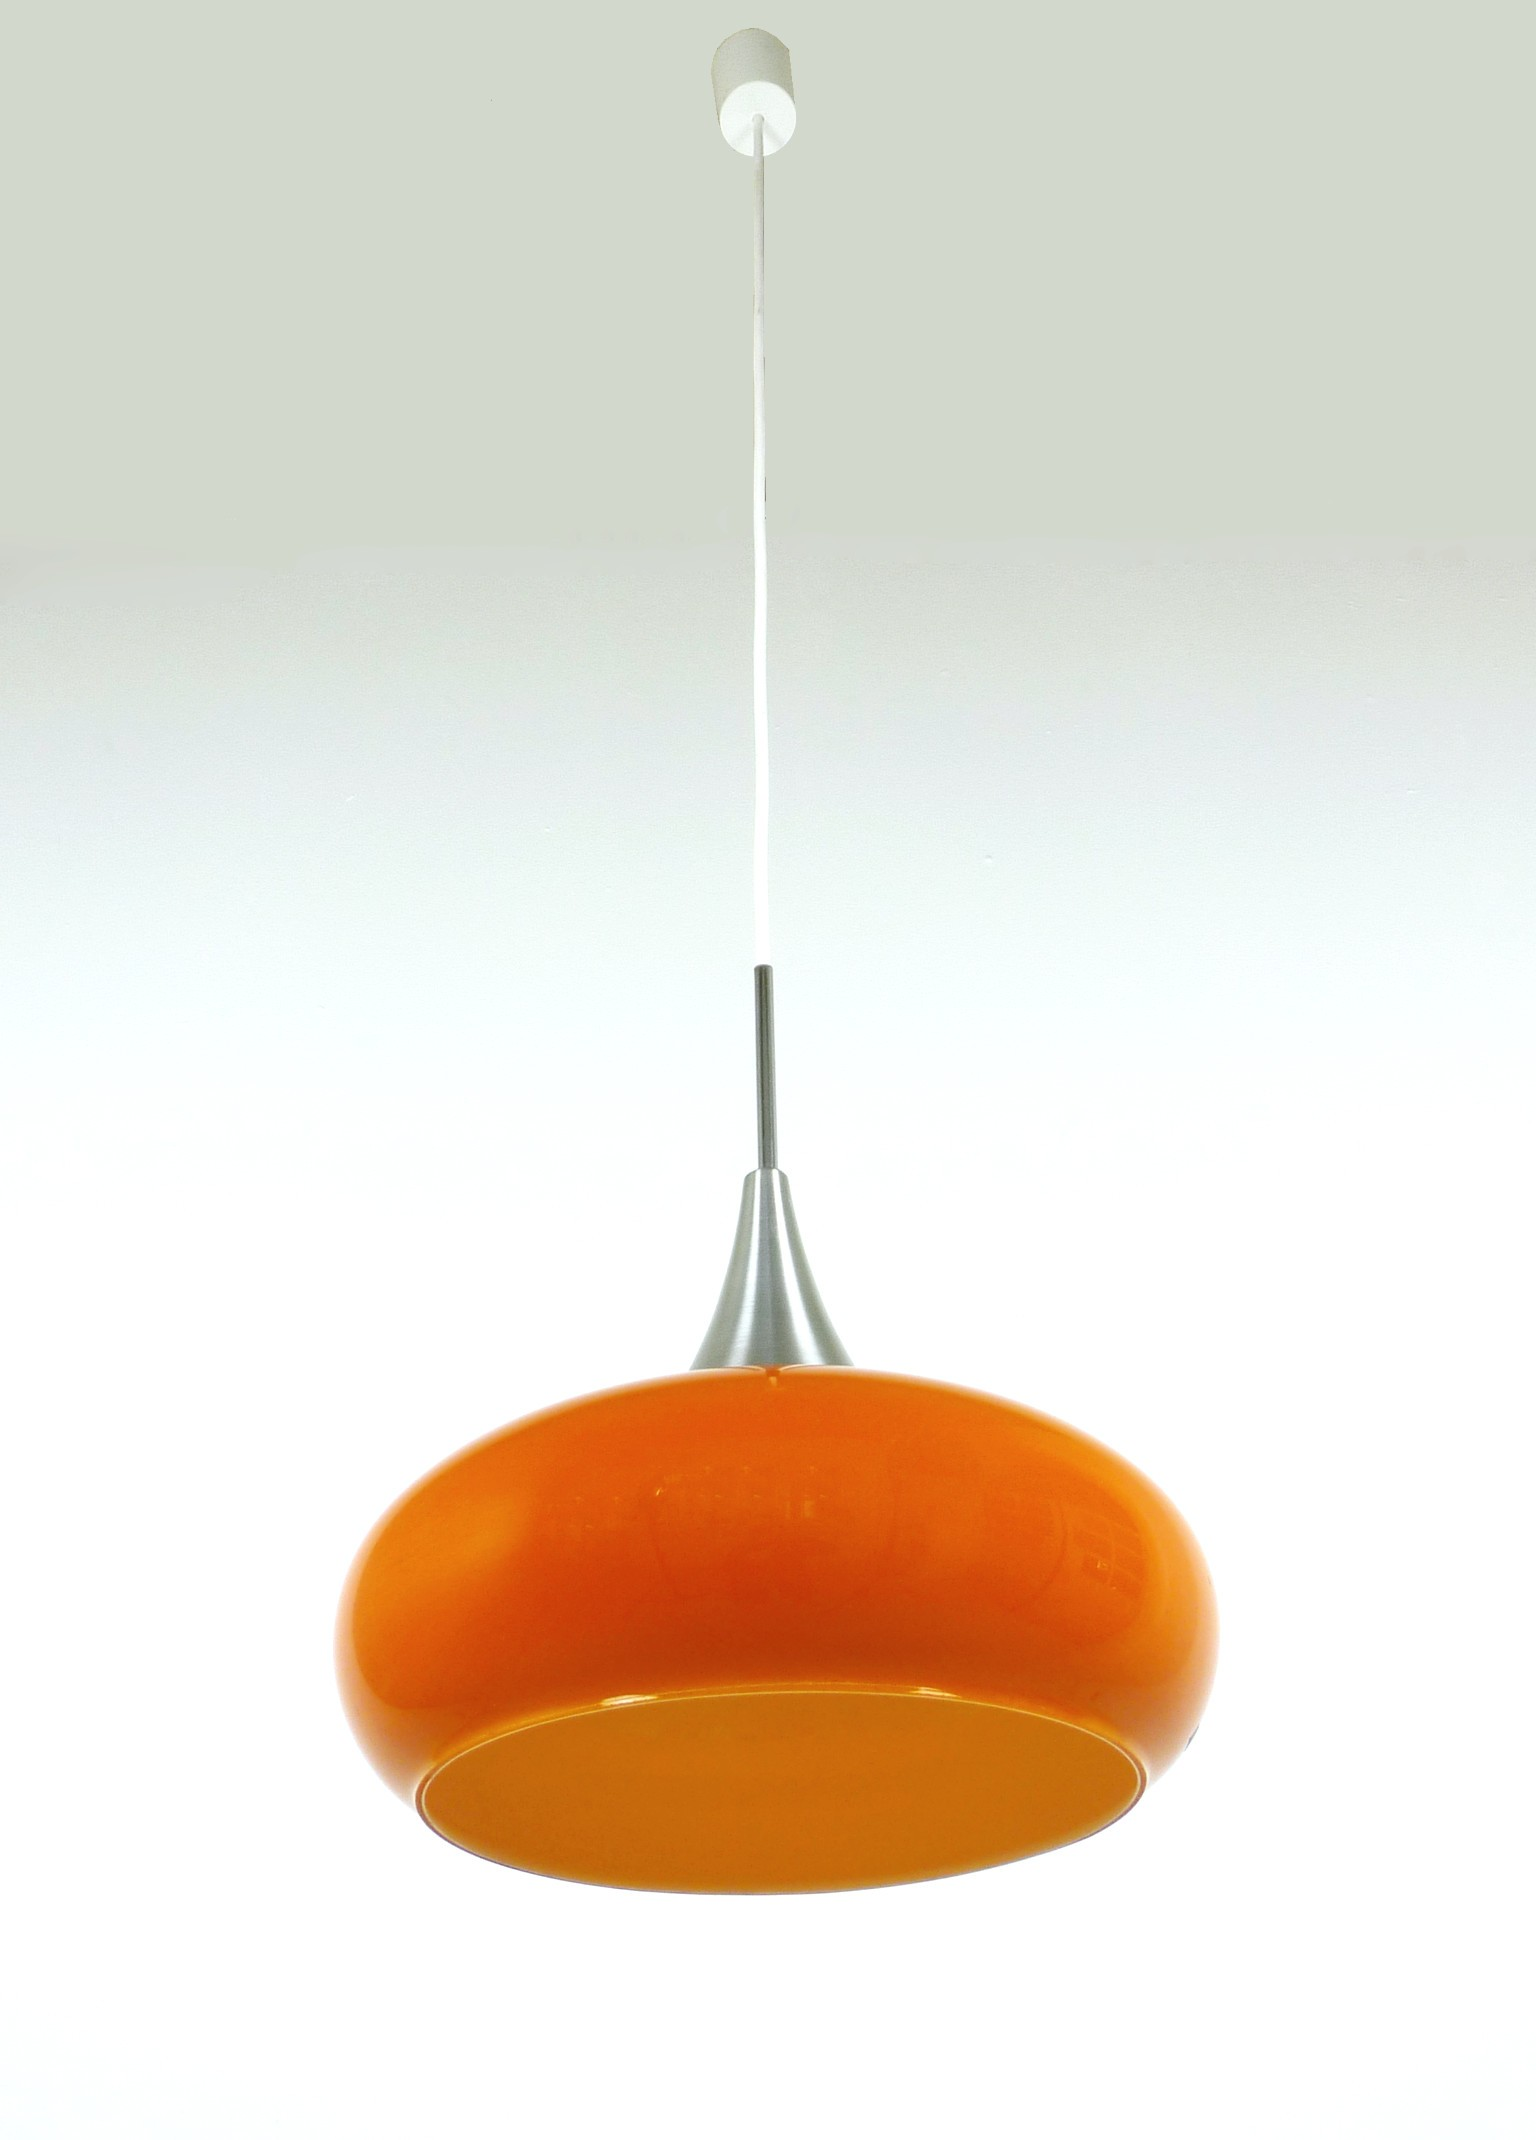 Orange glass pendant light from doria germany 1960s design market orange glass pendant light from doria germany 1960s previous next aloadofball Image collections